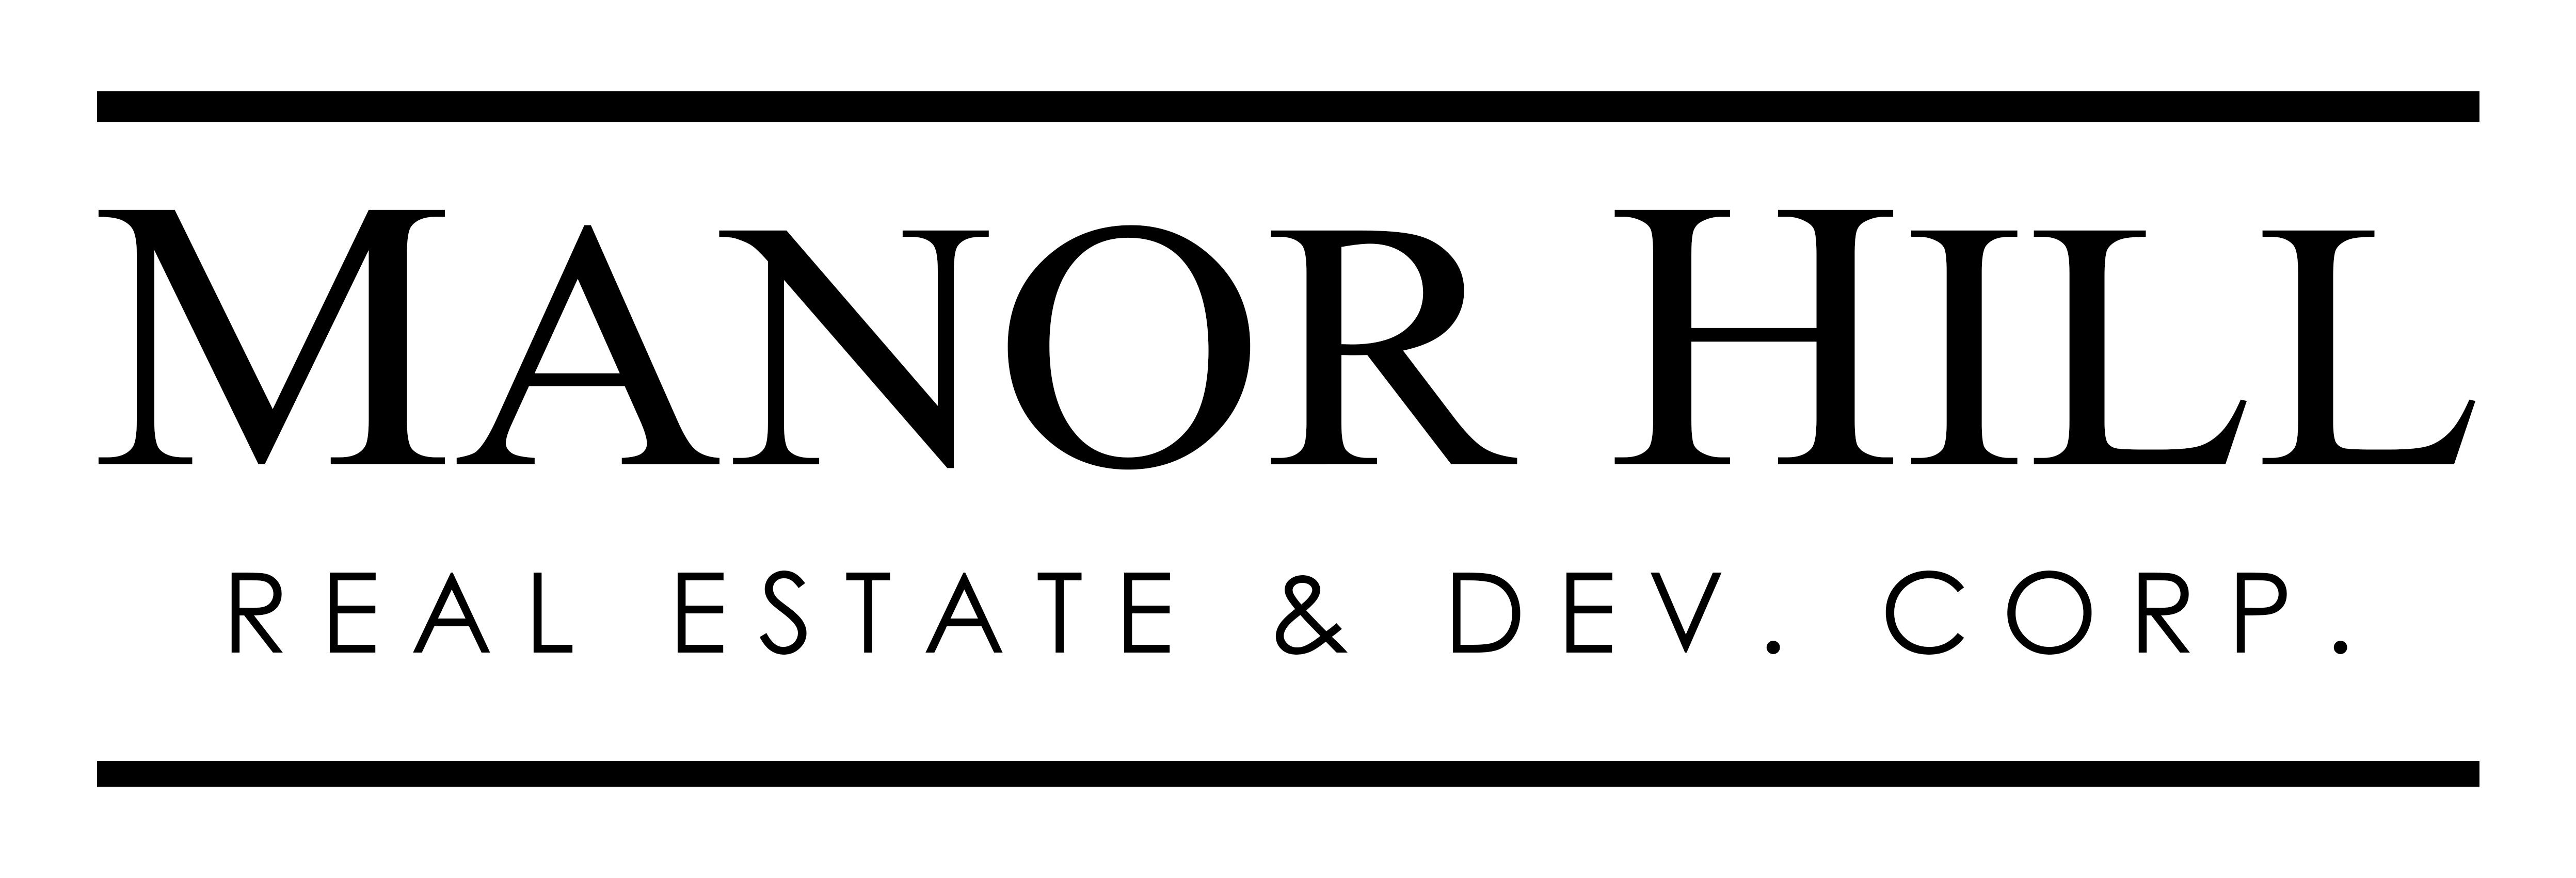 Manor Hill Real Estate and Dev. Corp